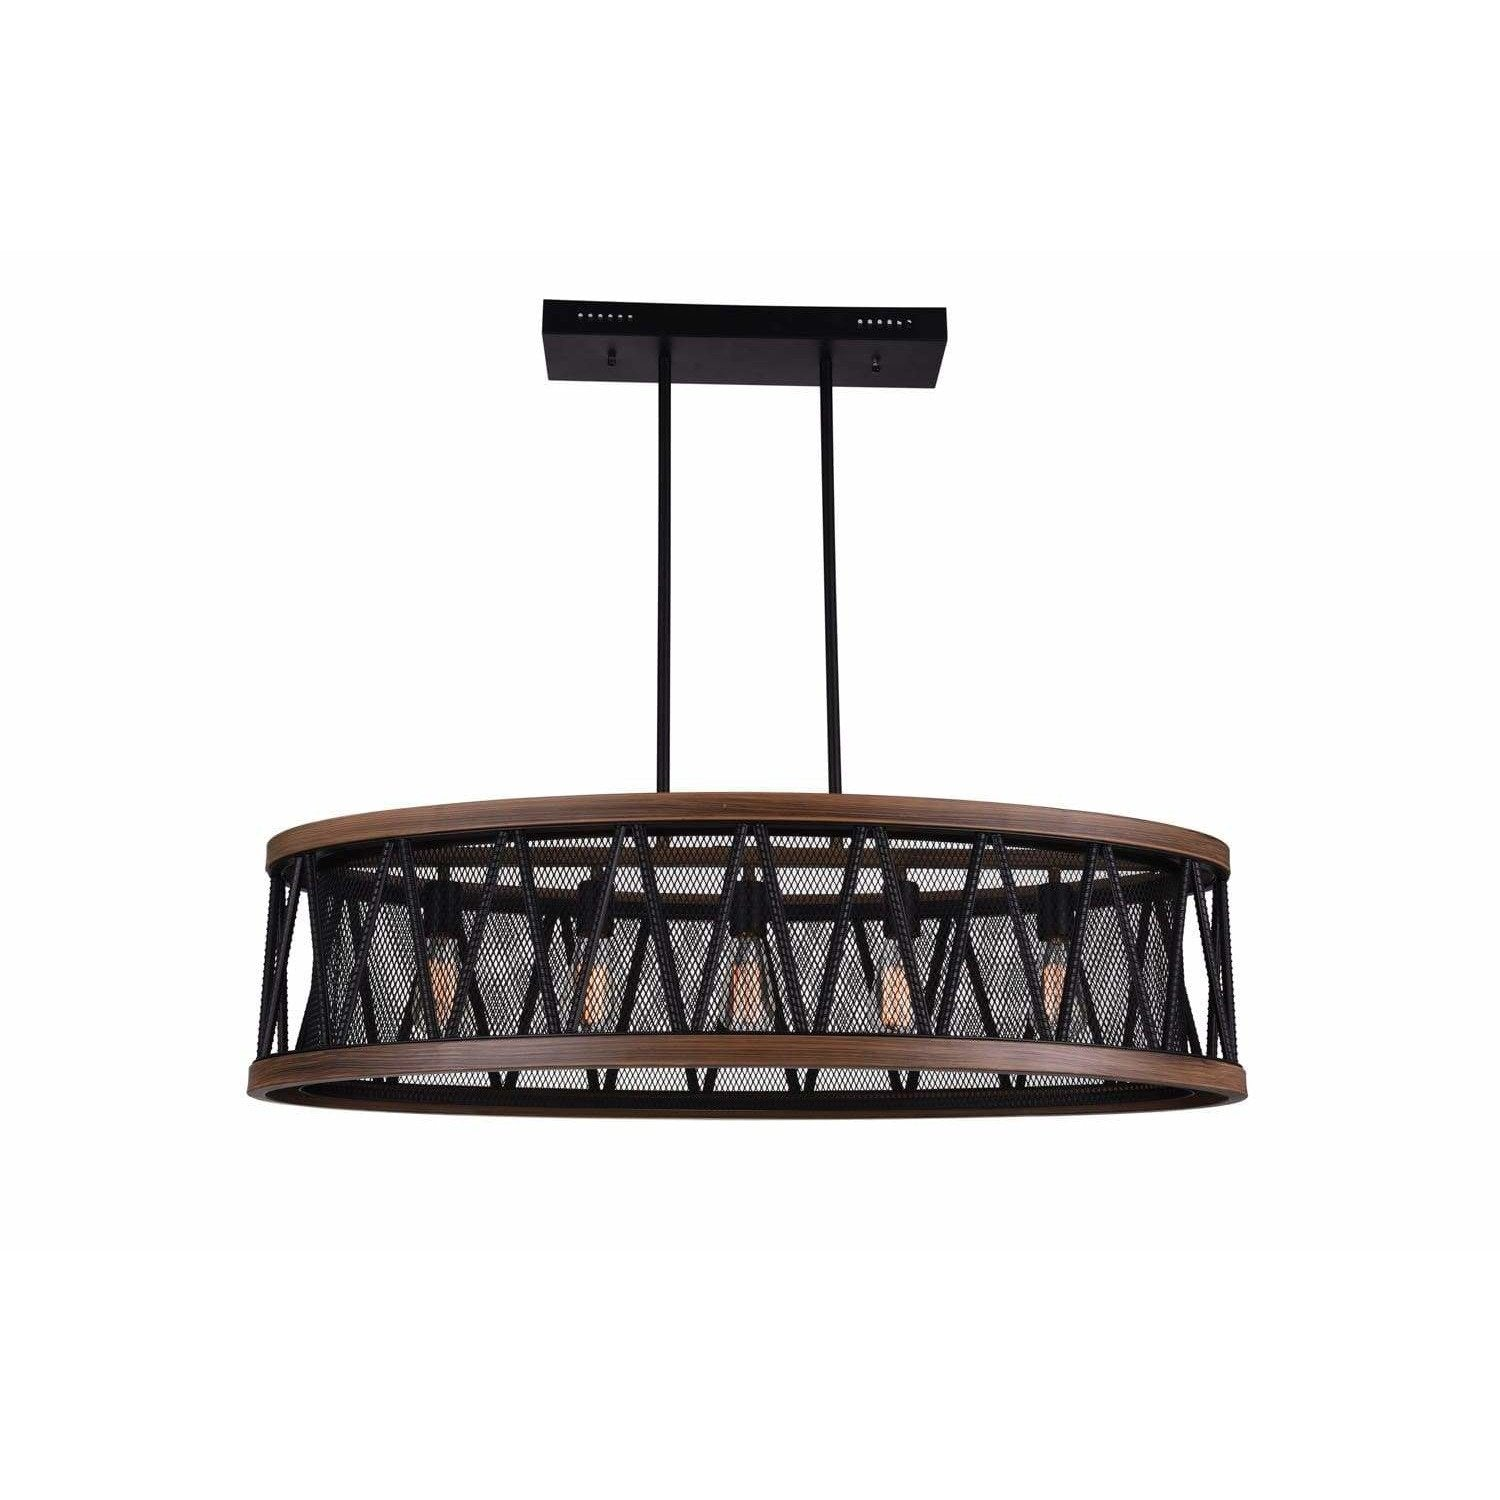 CWI Lighting Island/Pool Table Pewter Parsh 5 Light Island Chandelier with Pewter finish by CWI Lighting 9954P43-5-101